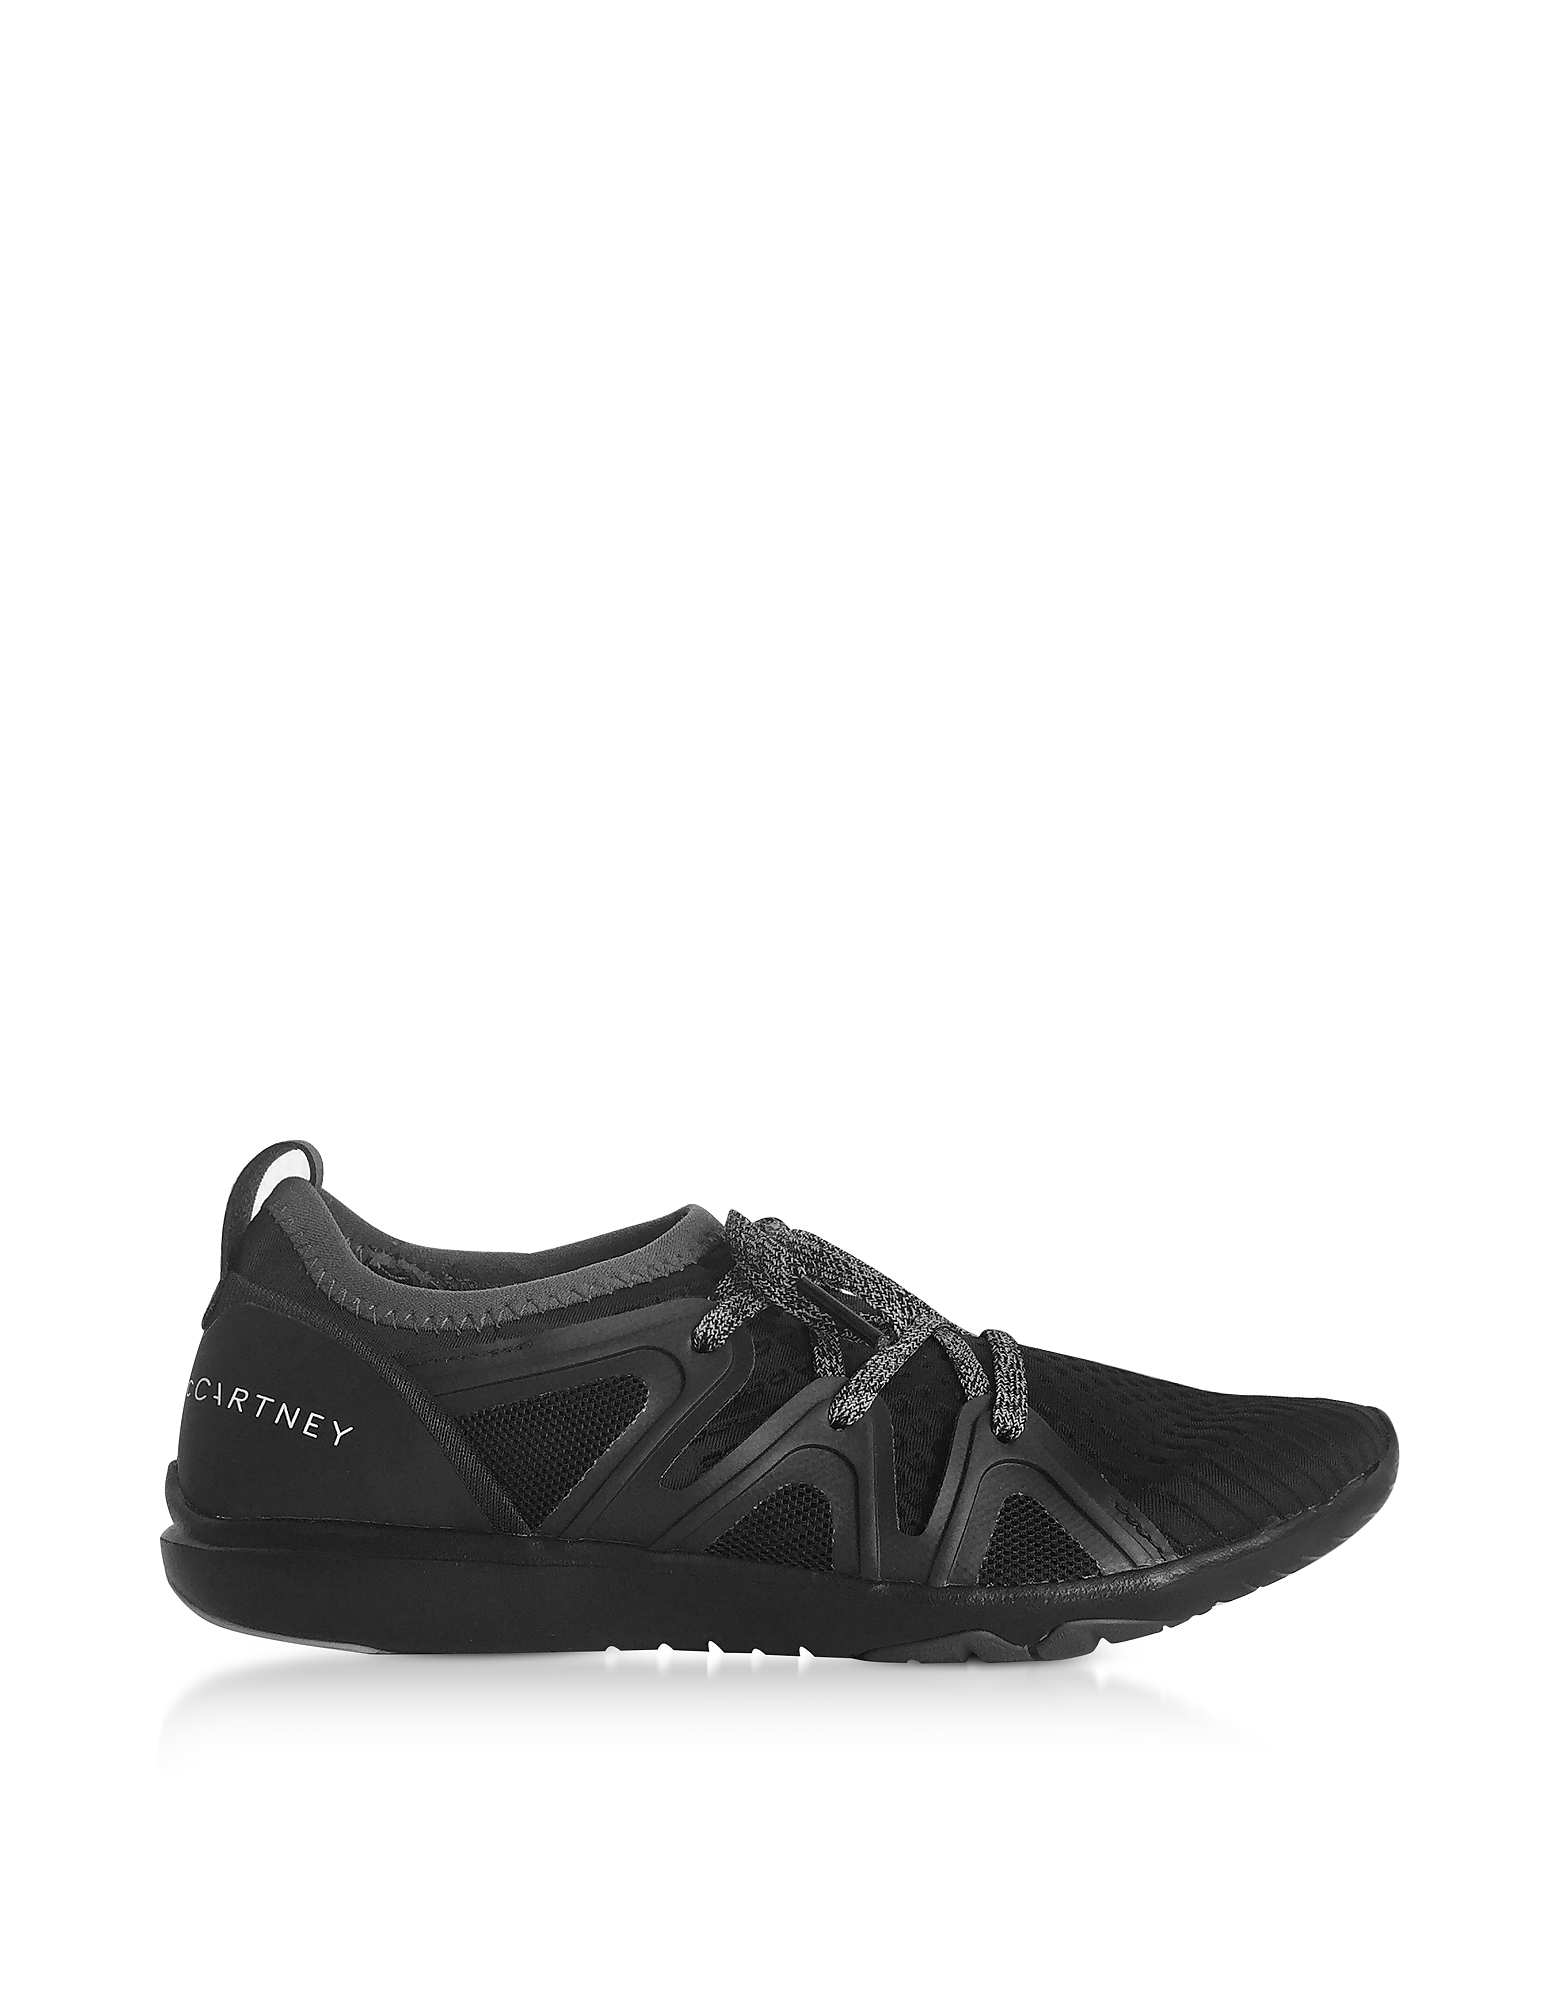 Adidas Stella McCartney Shoes, Black CrazyMove Trainers